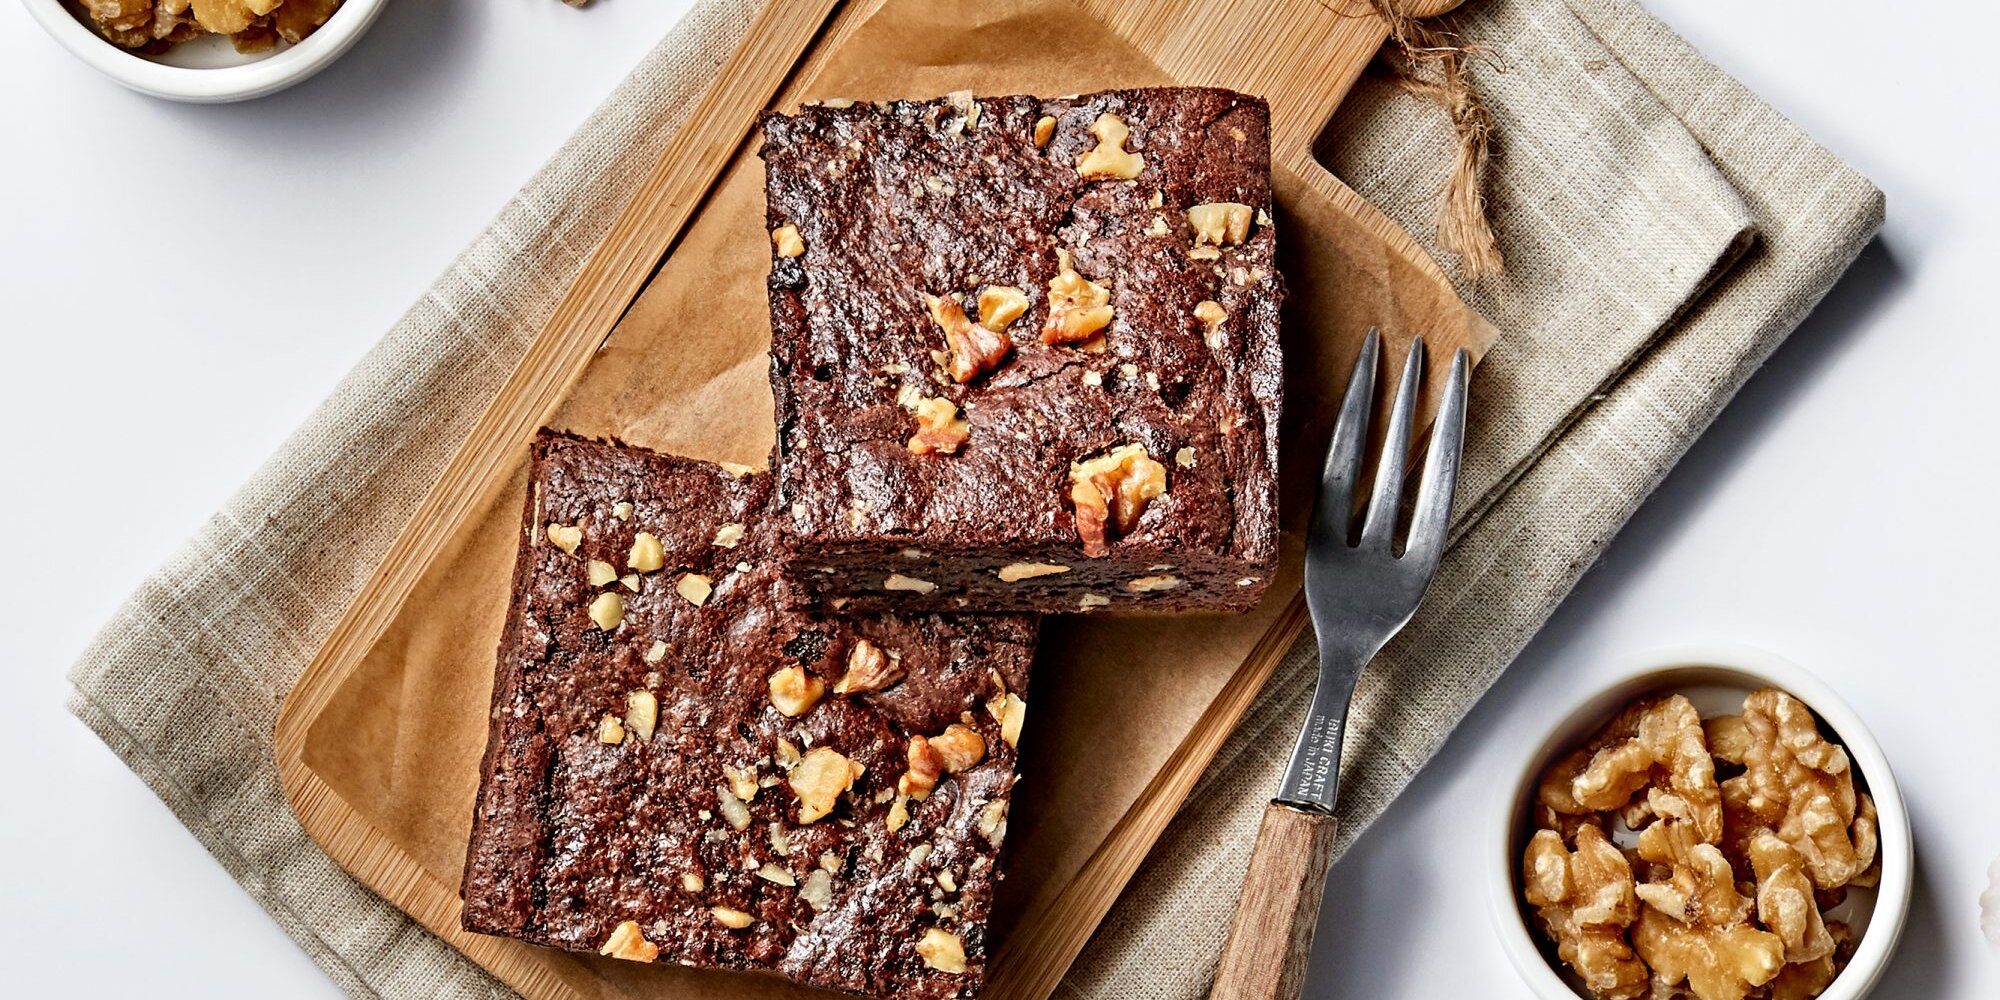 9 Healthy (and Delicious!) Ways RDs Recommend Hacking Your Dessert to Boost Its Nutritional Value